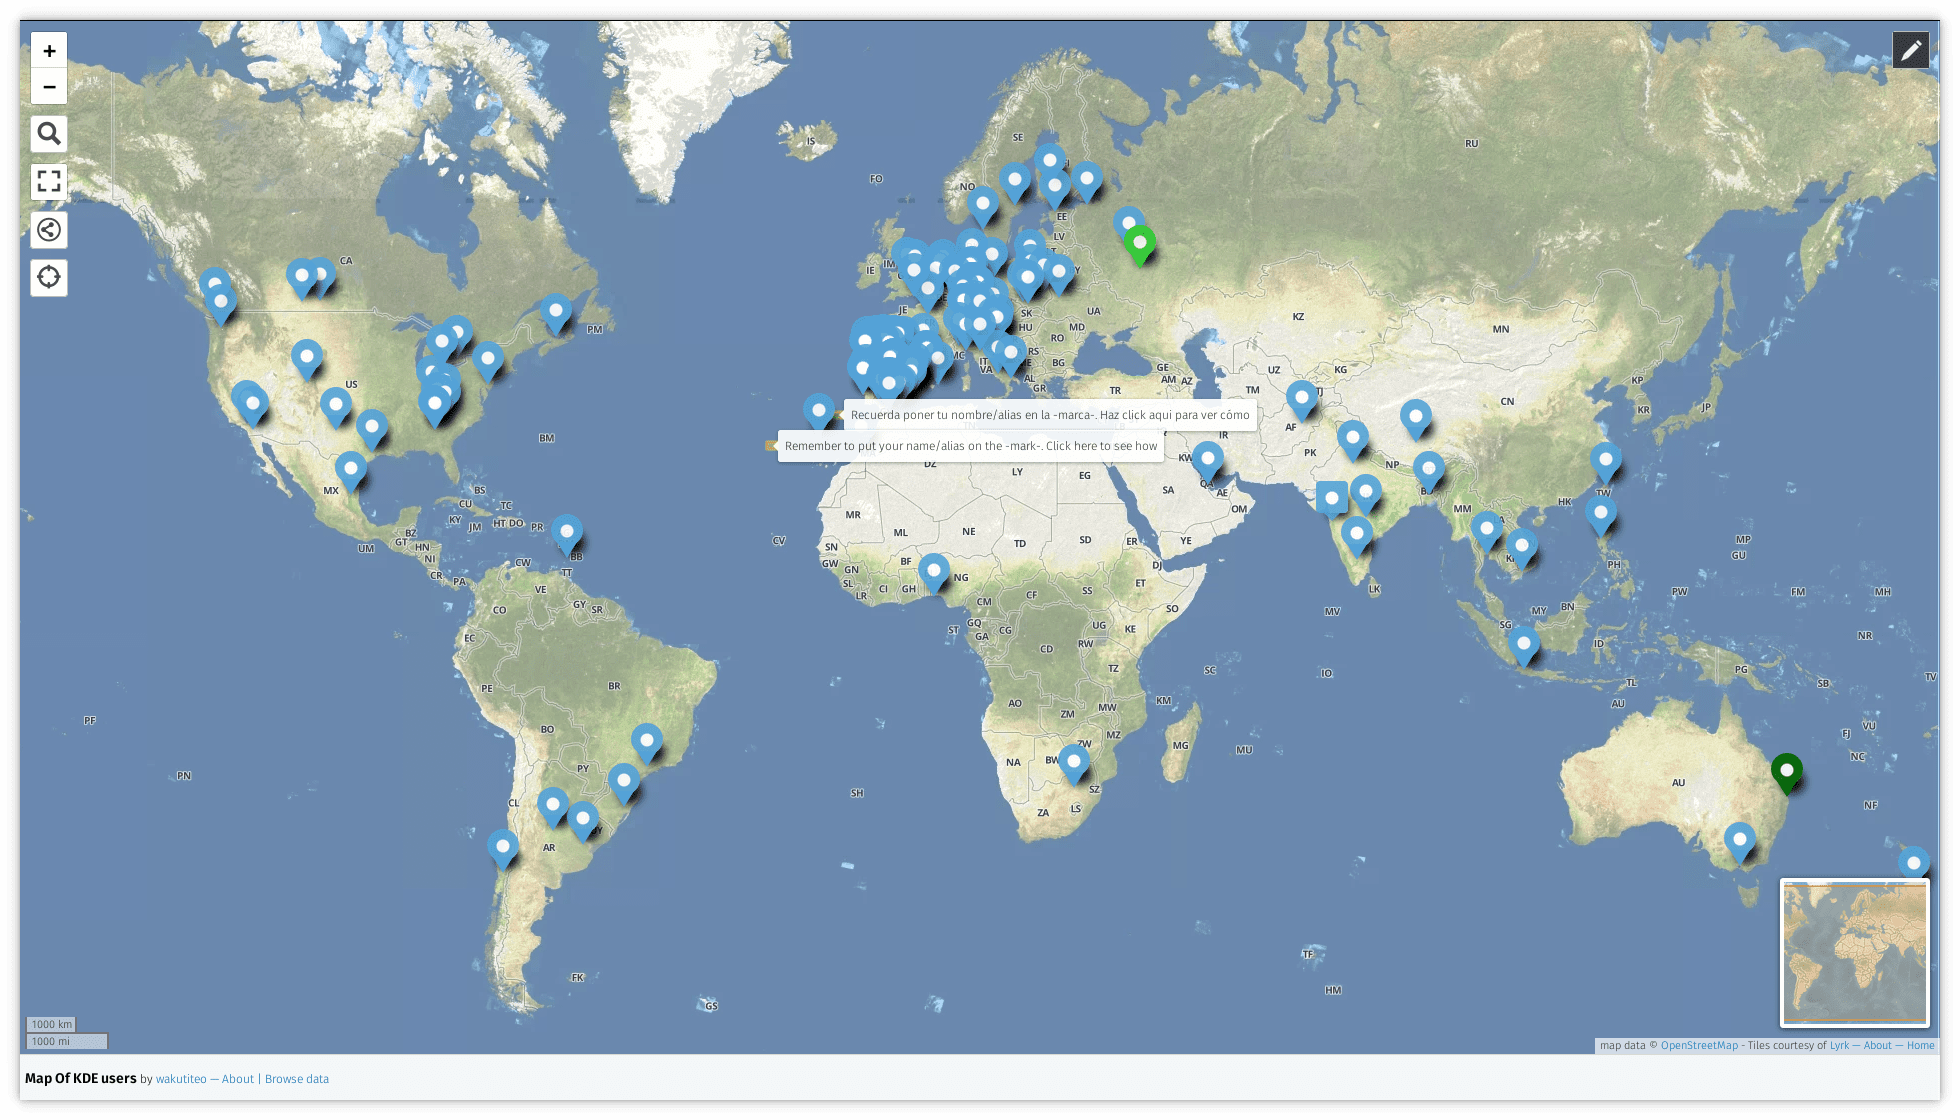 Map of KDE users with uMap and OSM